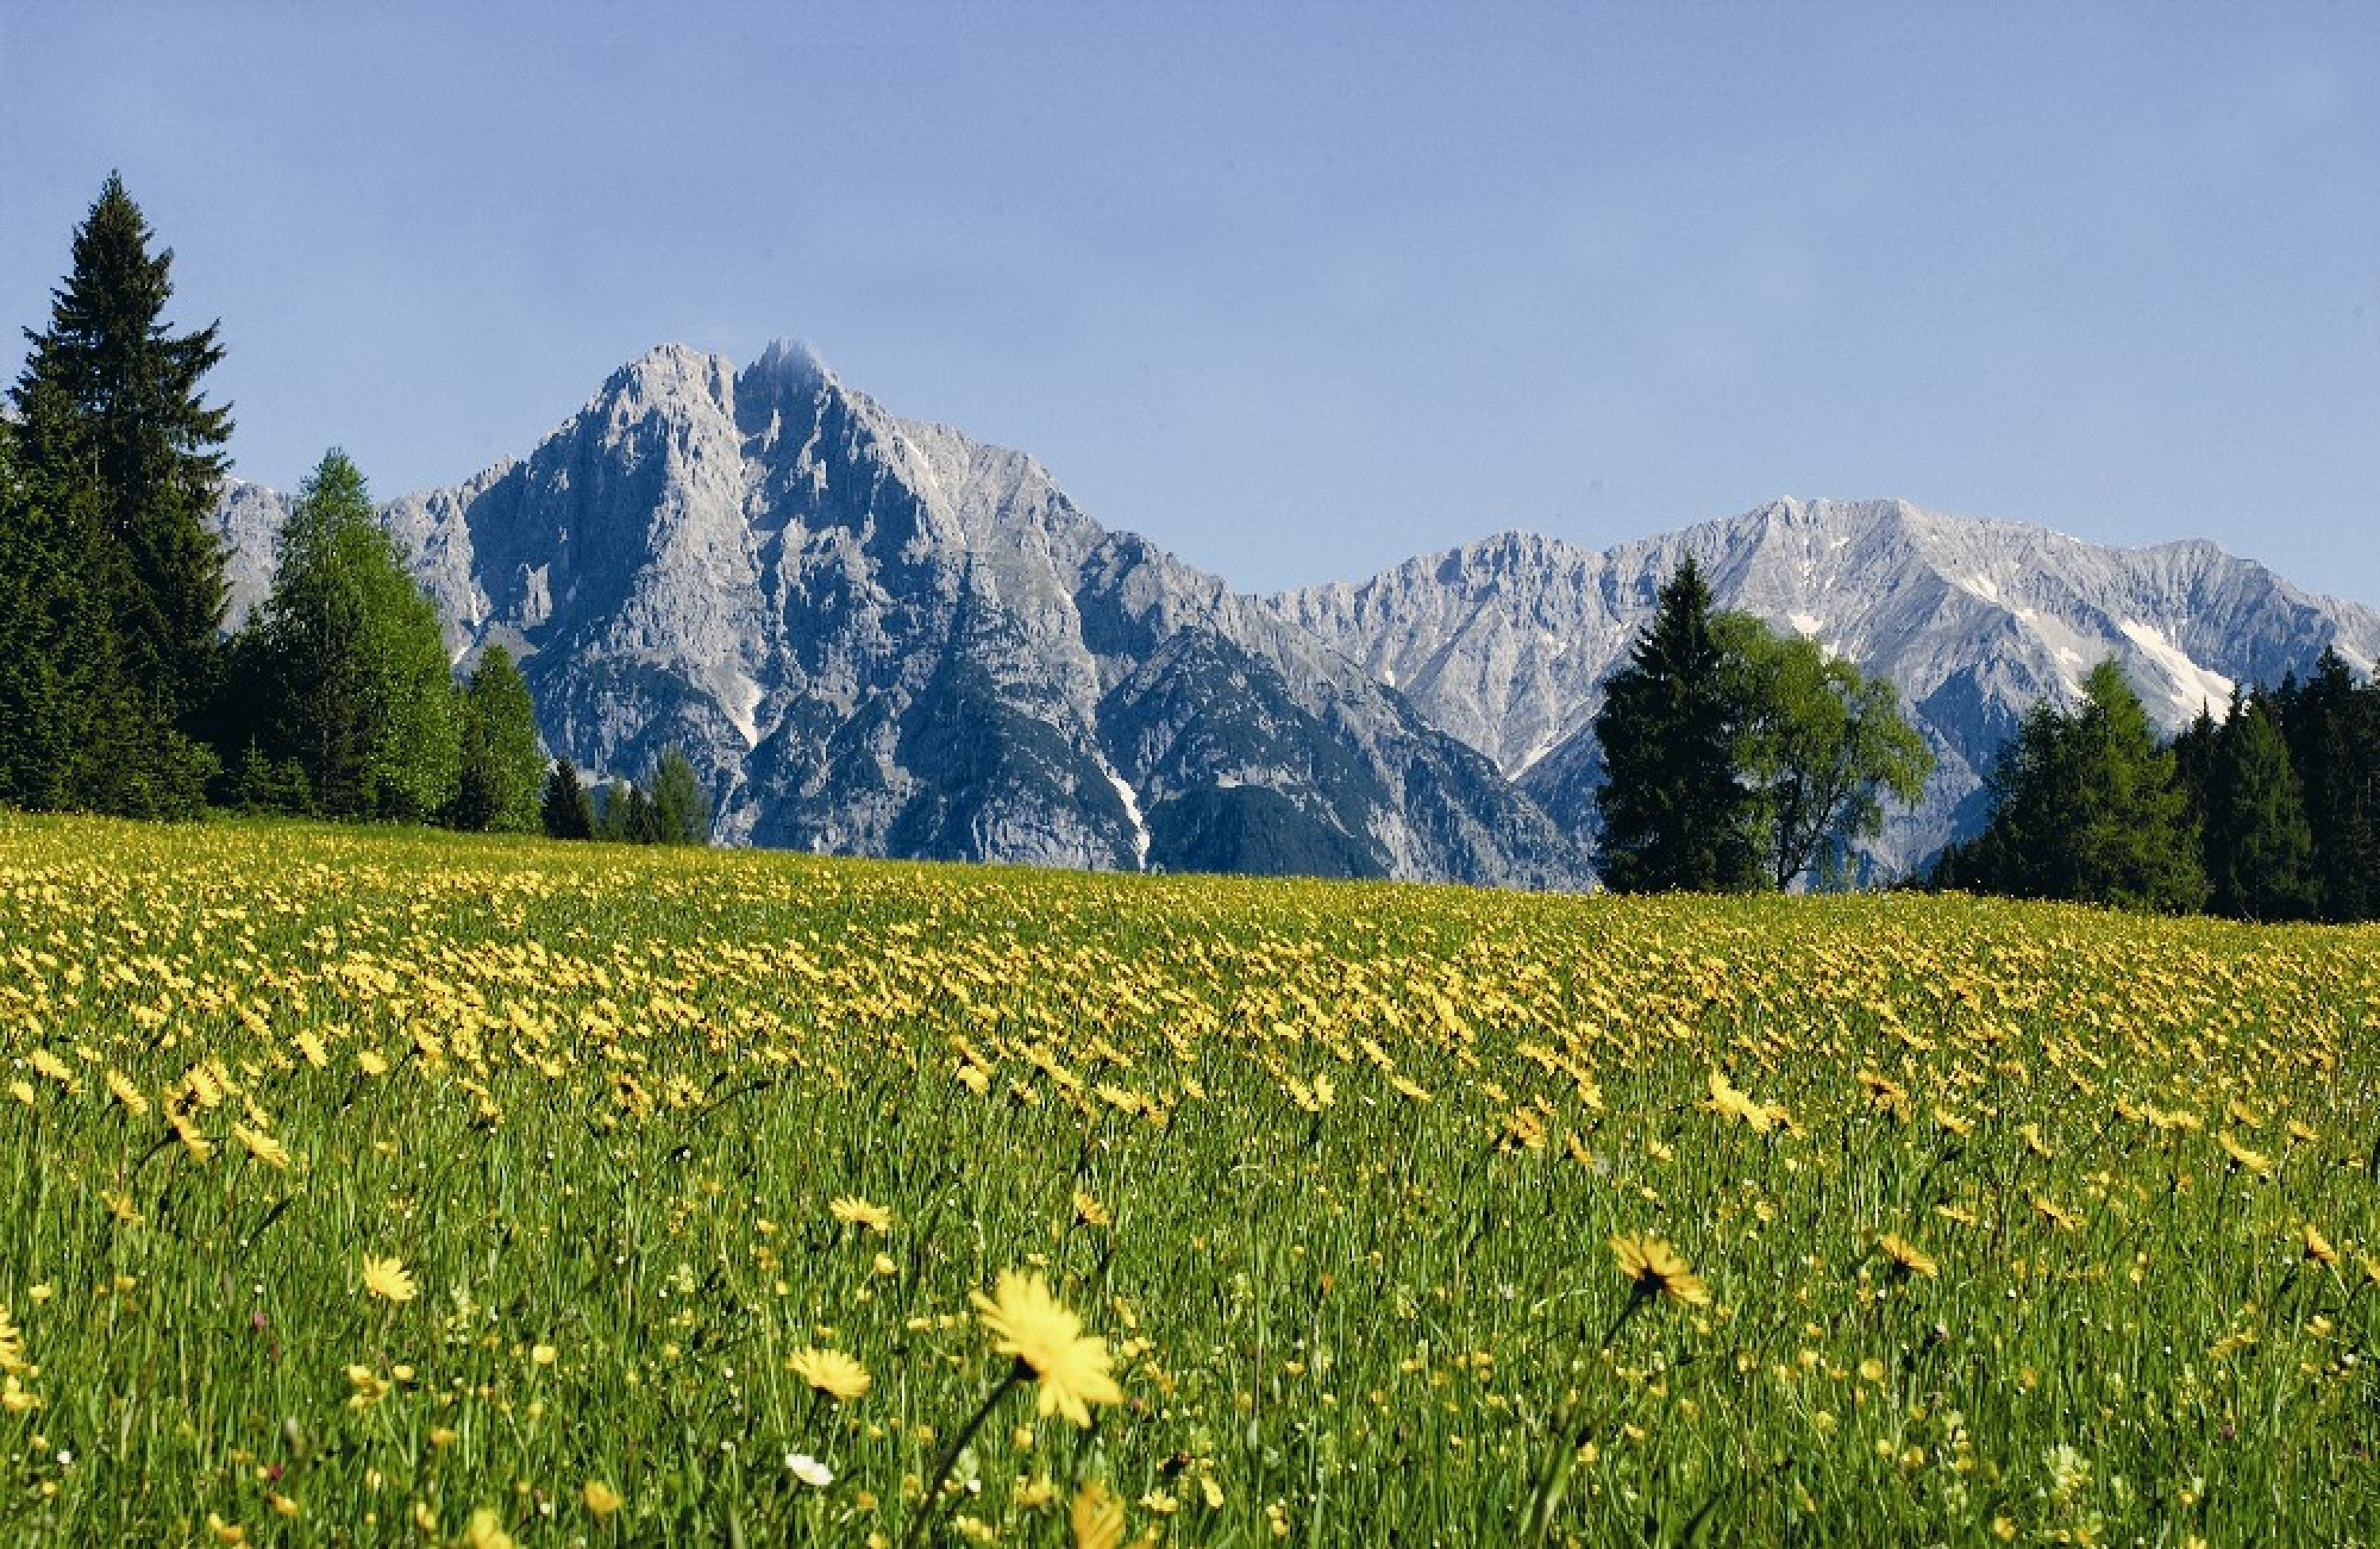 A lovely image of Wetterstein in Austria